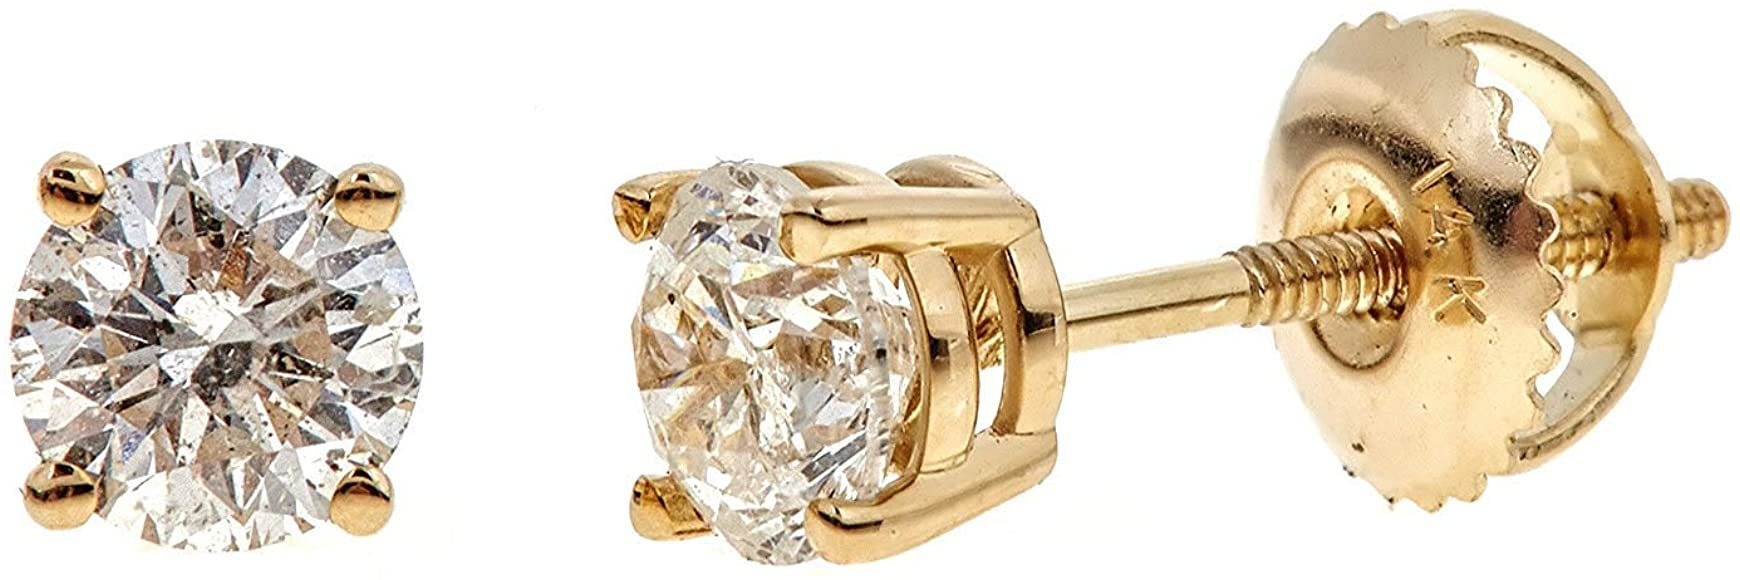 Diamond Earrings for women-girls Princess Cut studs 14K Gold Gift Box Authenticity Cards G, I1